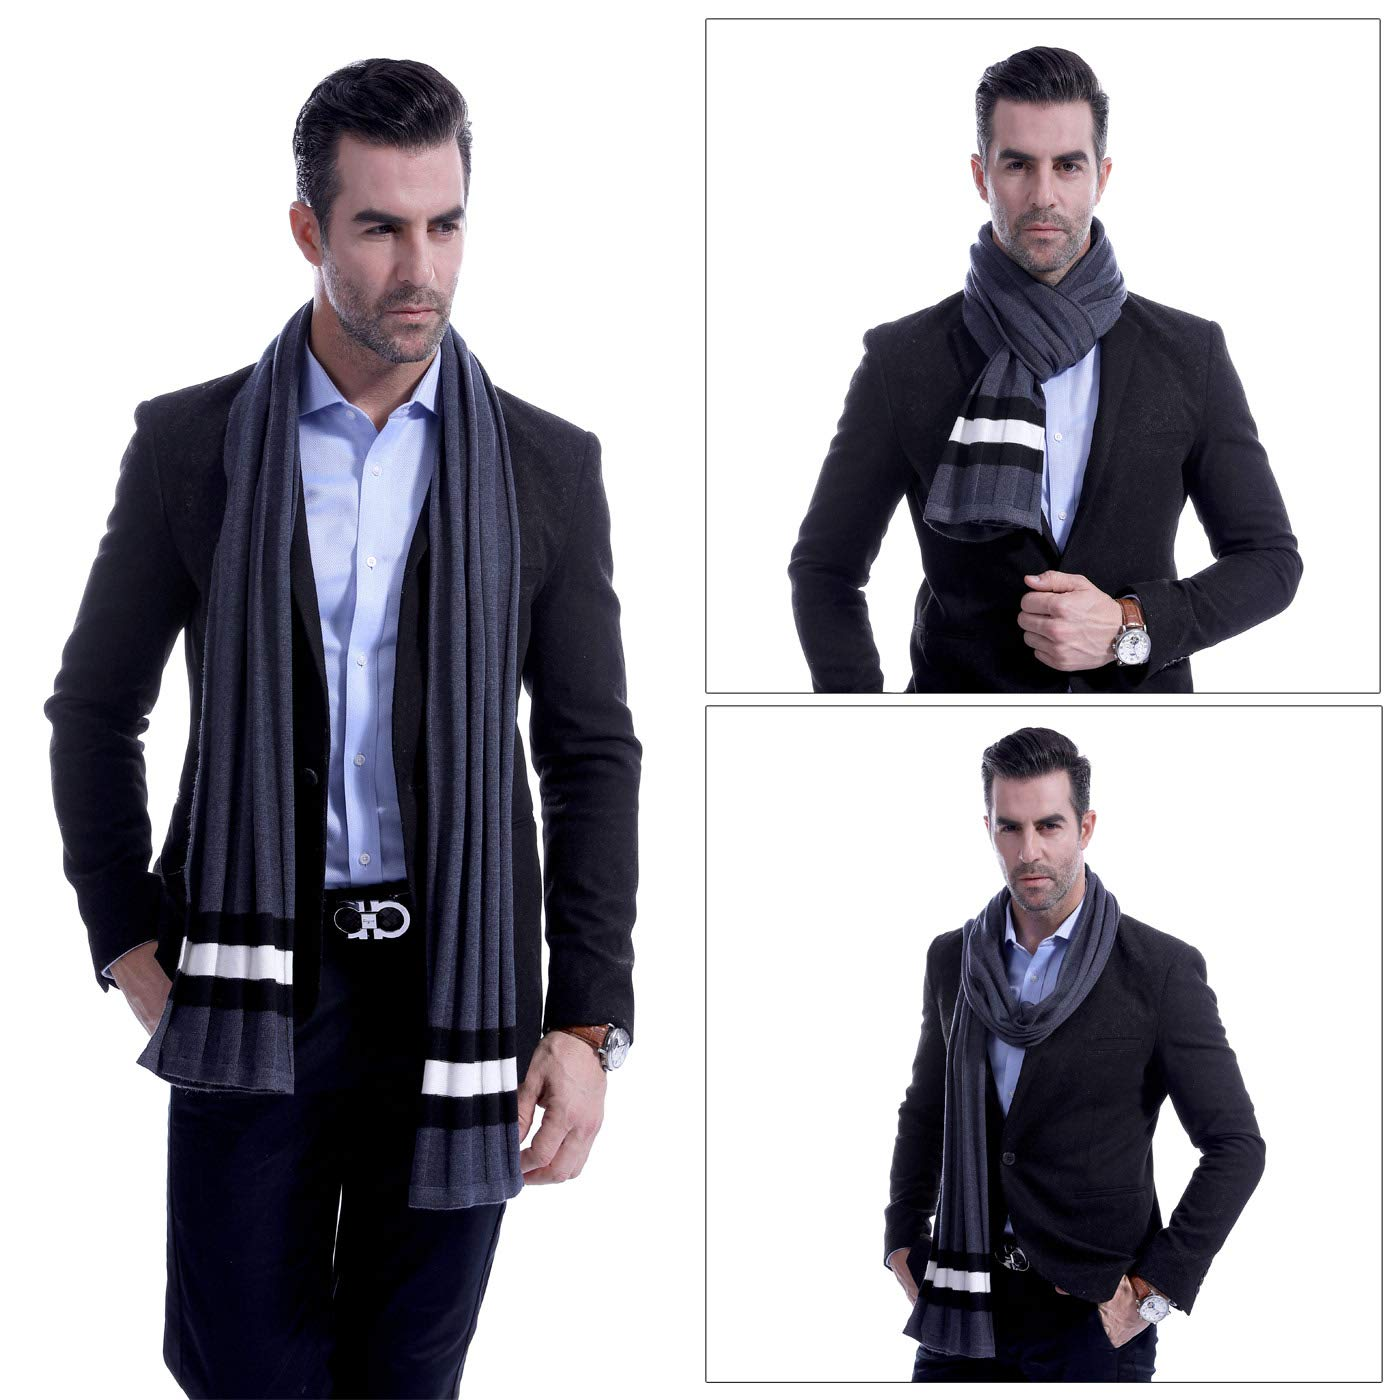 Men Plain Thermal Scarf Knitted Striped Winter Scarves One Size Leisure Business Men Warm Neckerchief Gray by Panegy (Image #5)